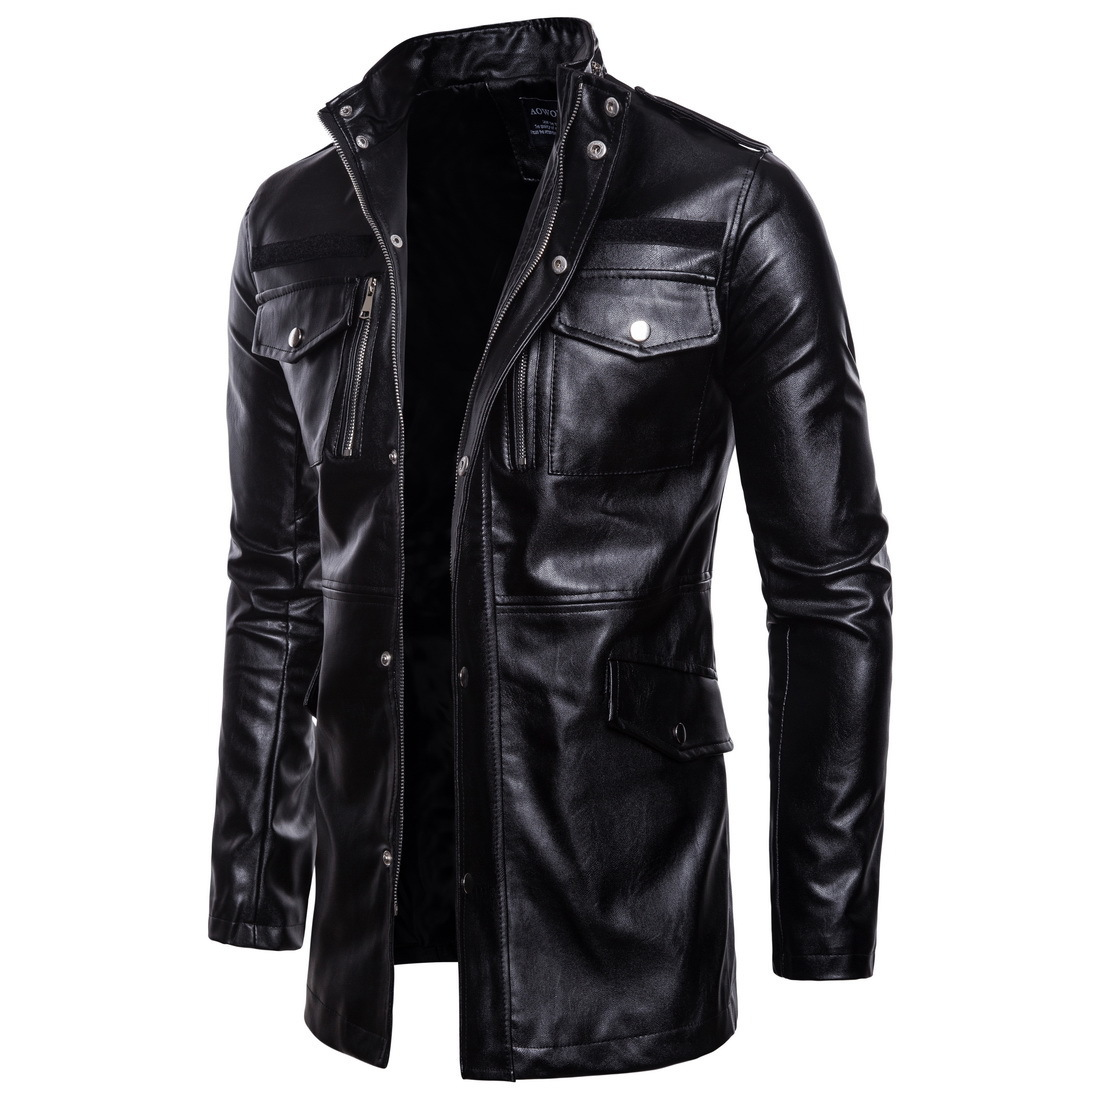 MEN'S Leather Coat 2018 Foreign Trade Autumn And Winter New Style Men's Stand Collar Four-Pocket Mid-length Men Biker Jacket Lea